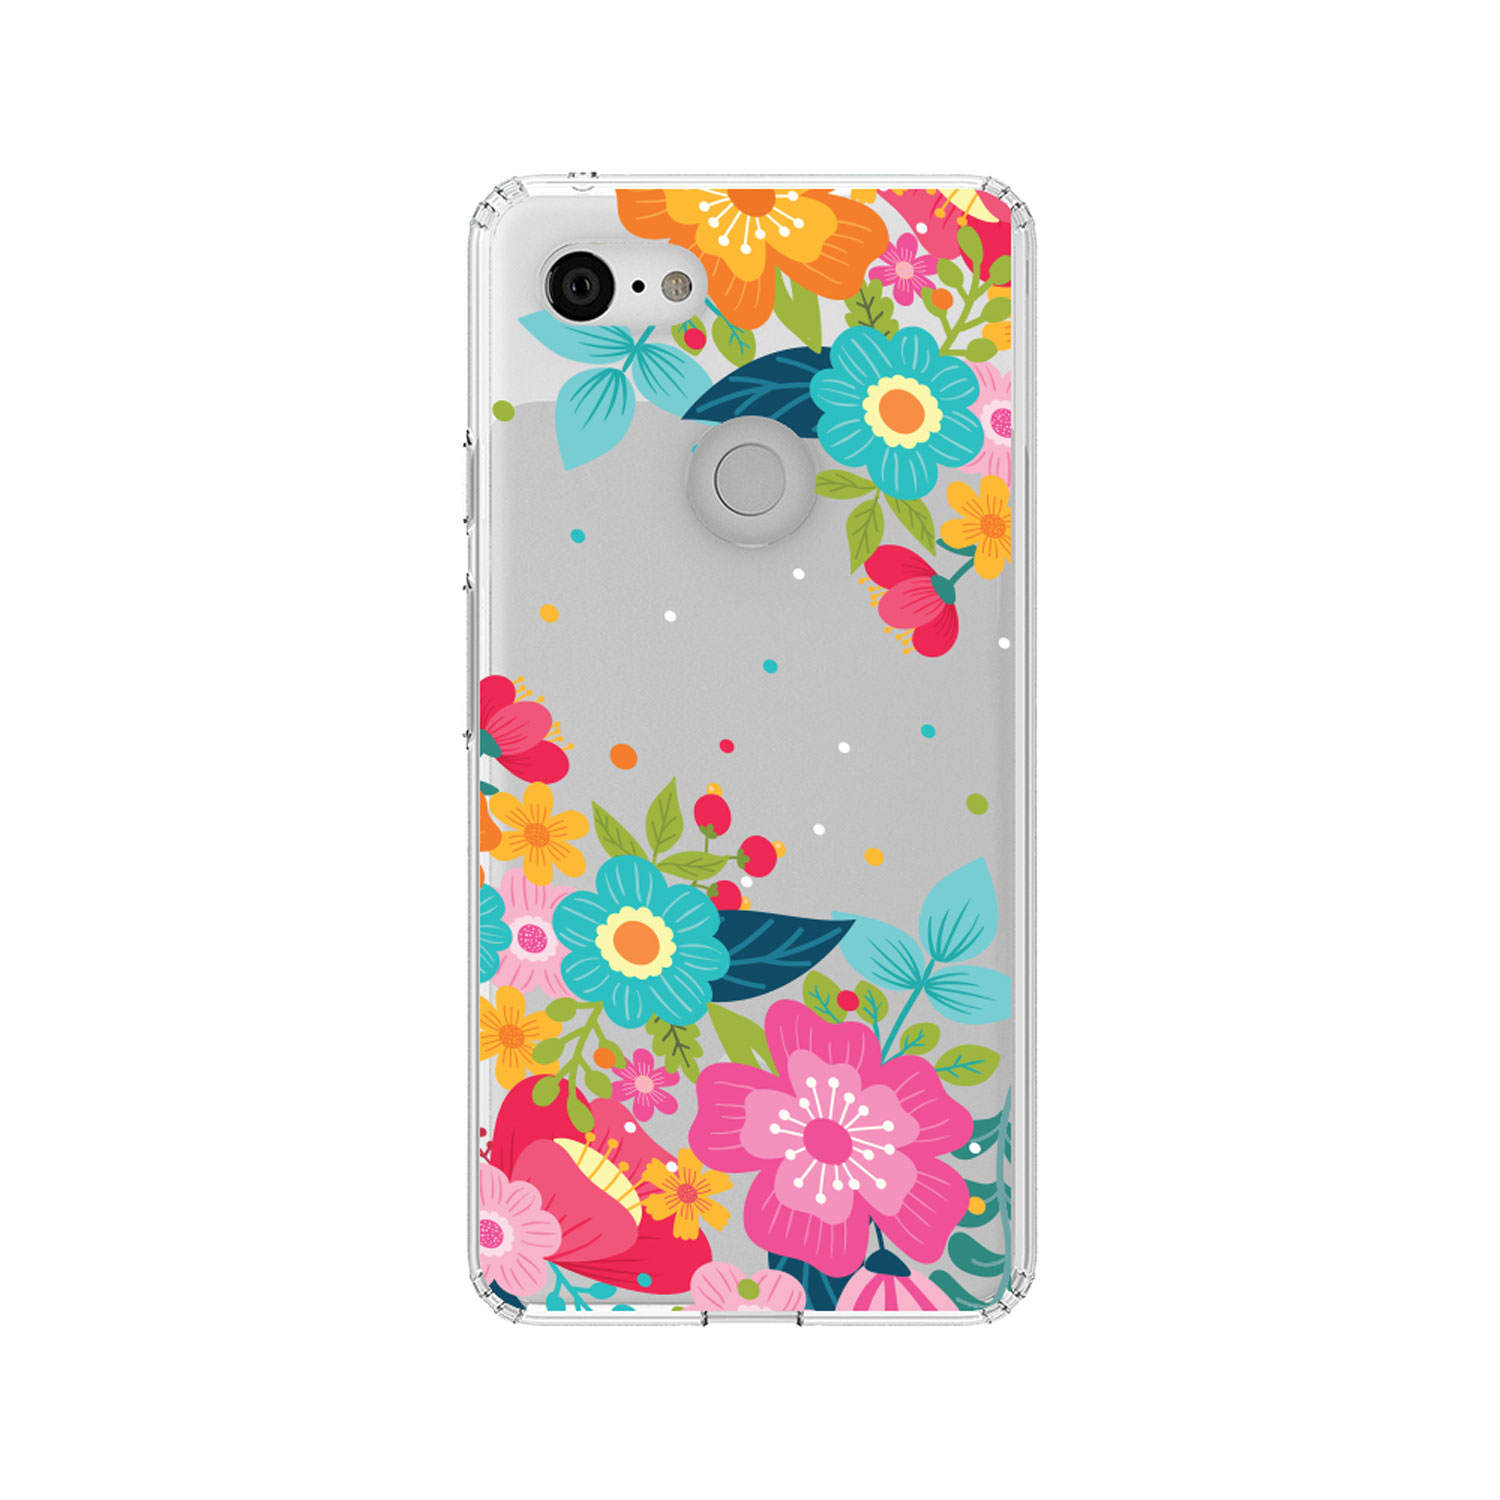 """DistinctInk Clear Shockproof Hybrid Case for Google Pixel 3 (5.5"""" Screen) - TPU Bumper, Acrylic Back, Tempered Glass Screen Protector - Bright Colored Flowers and Dots"""